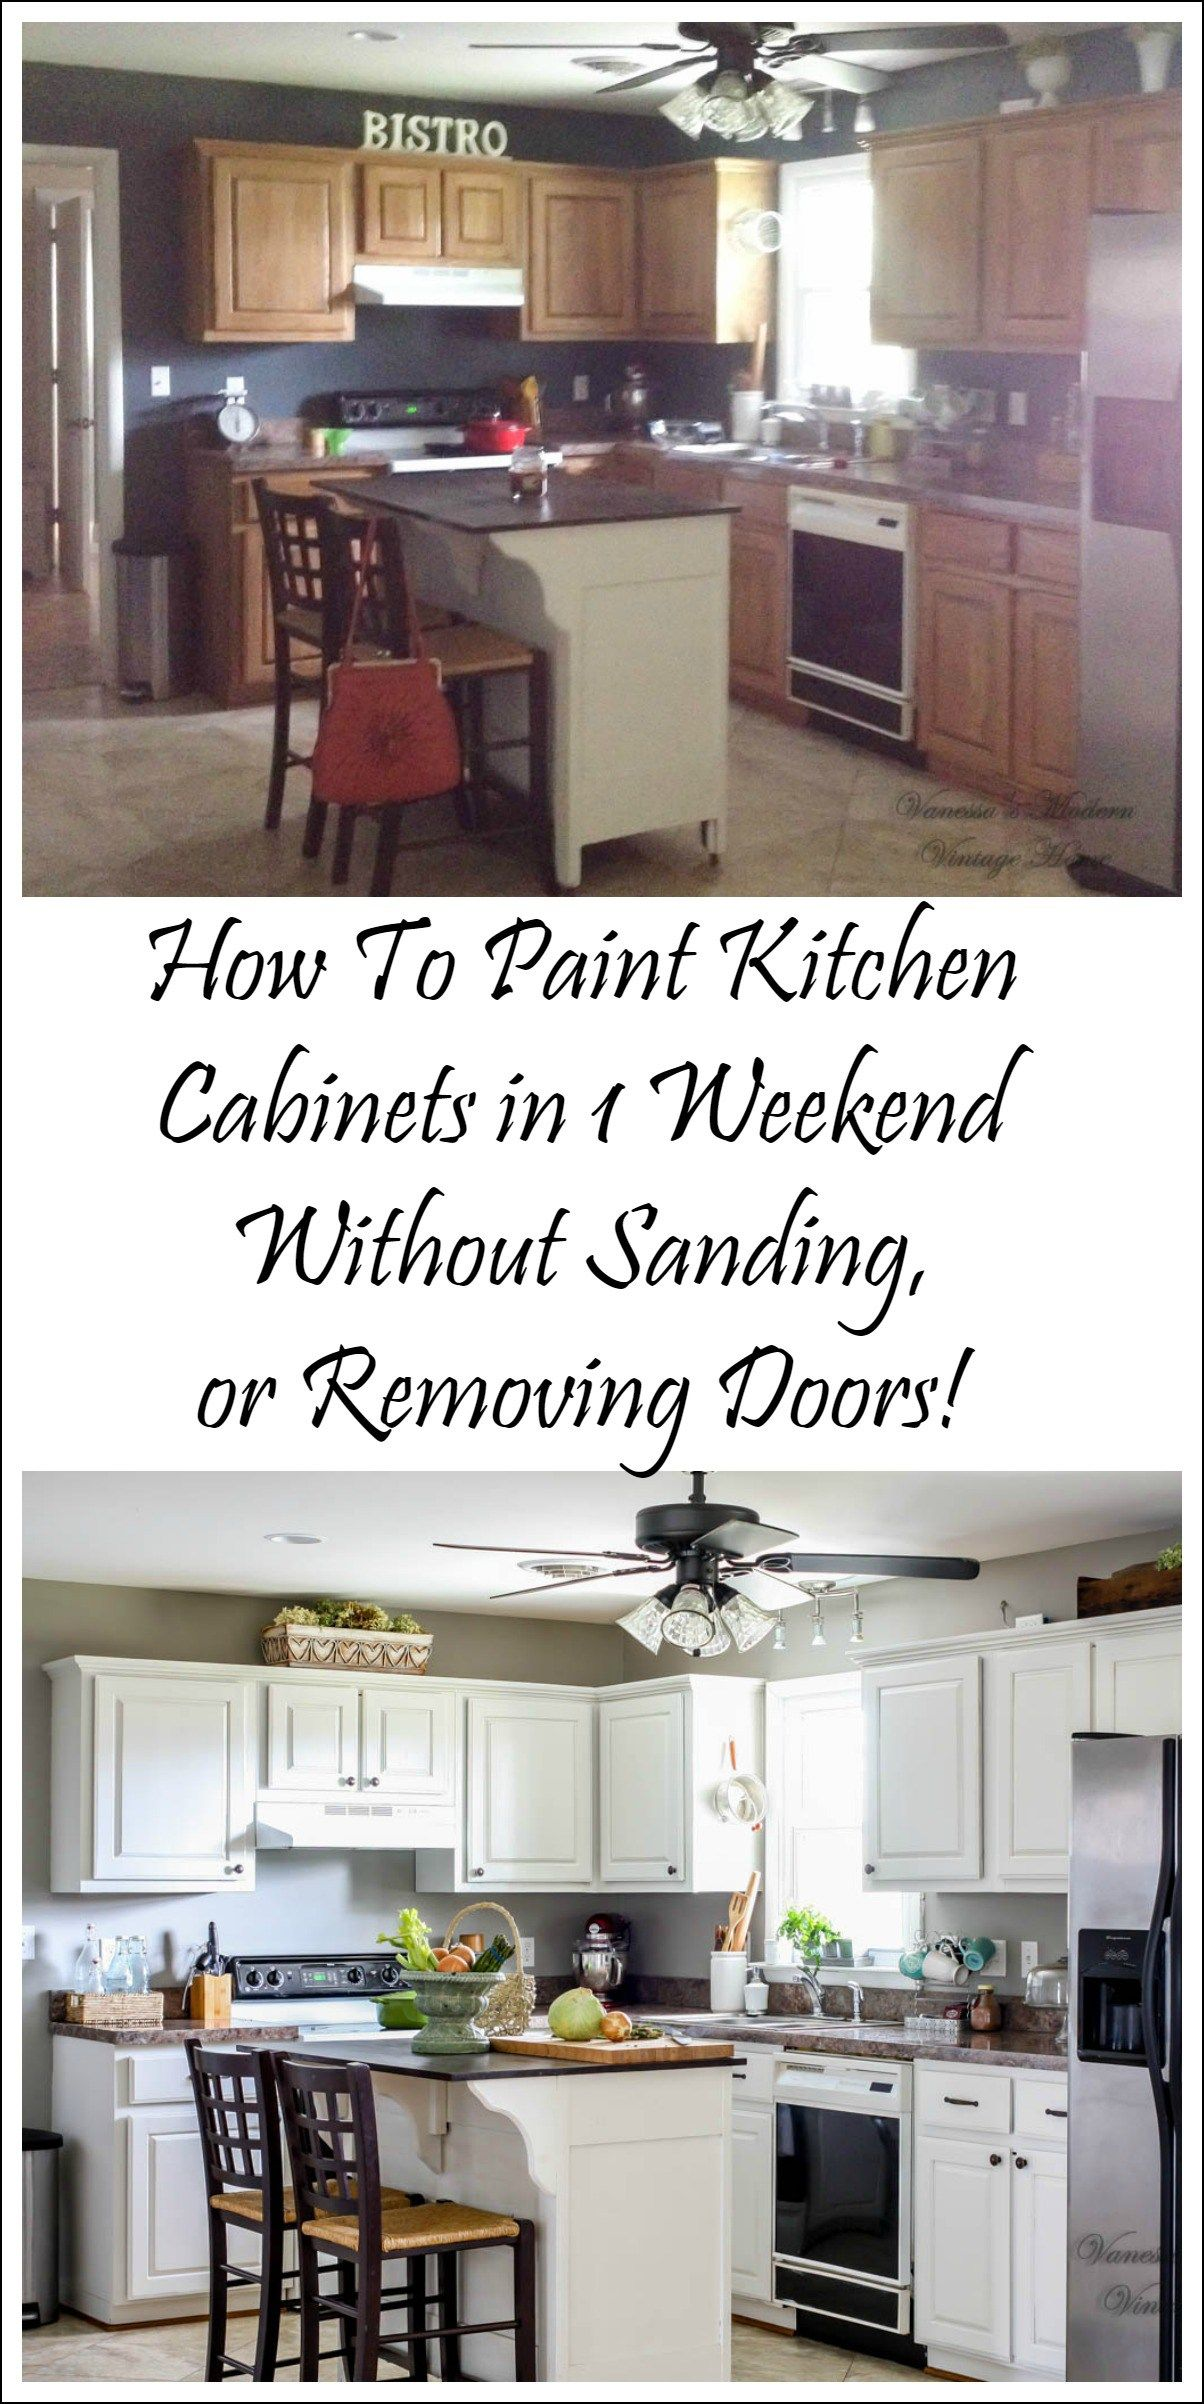 Peachy How I Painted My Kitchen Cabinets Without Removing The Doors Download Free Architecture Designs Sospemadebymaigaardcom